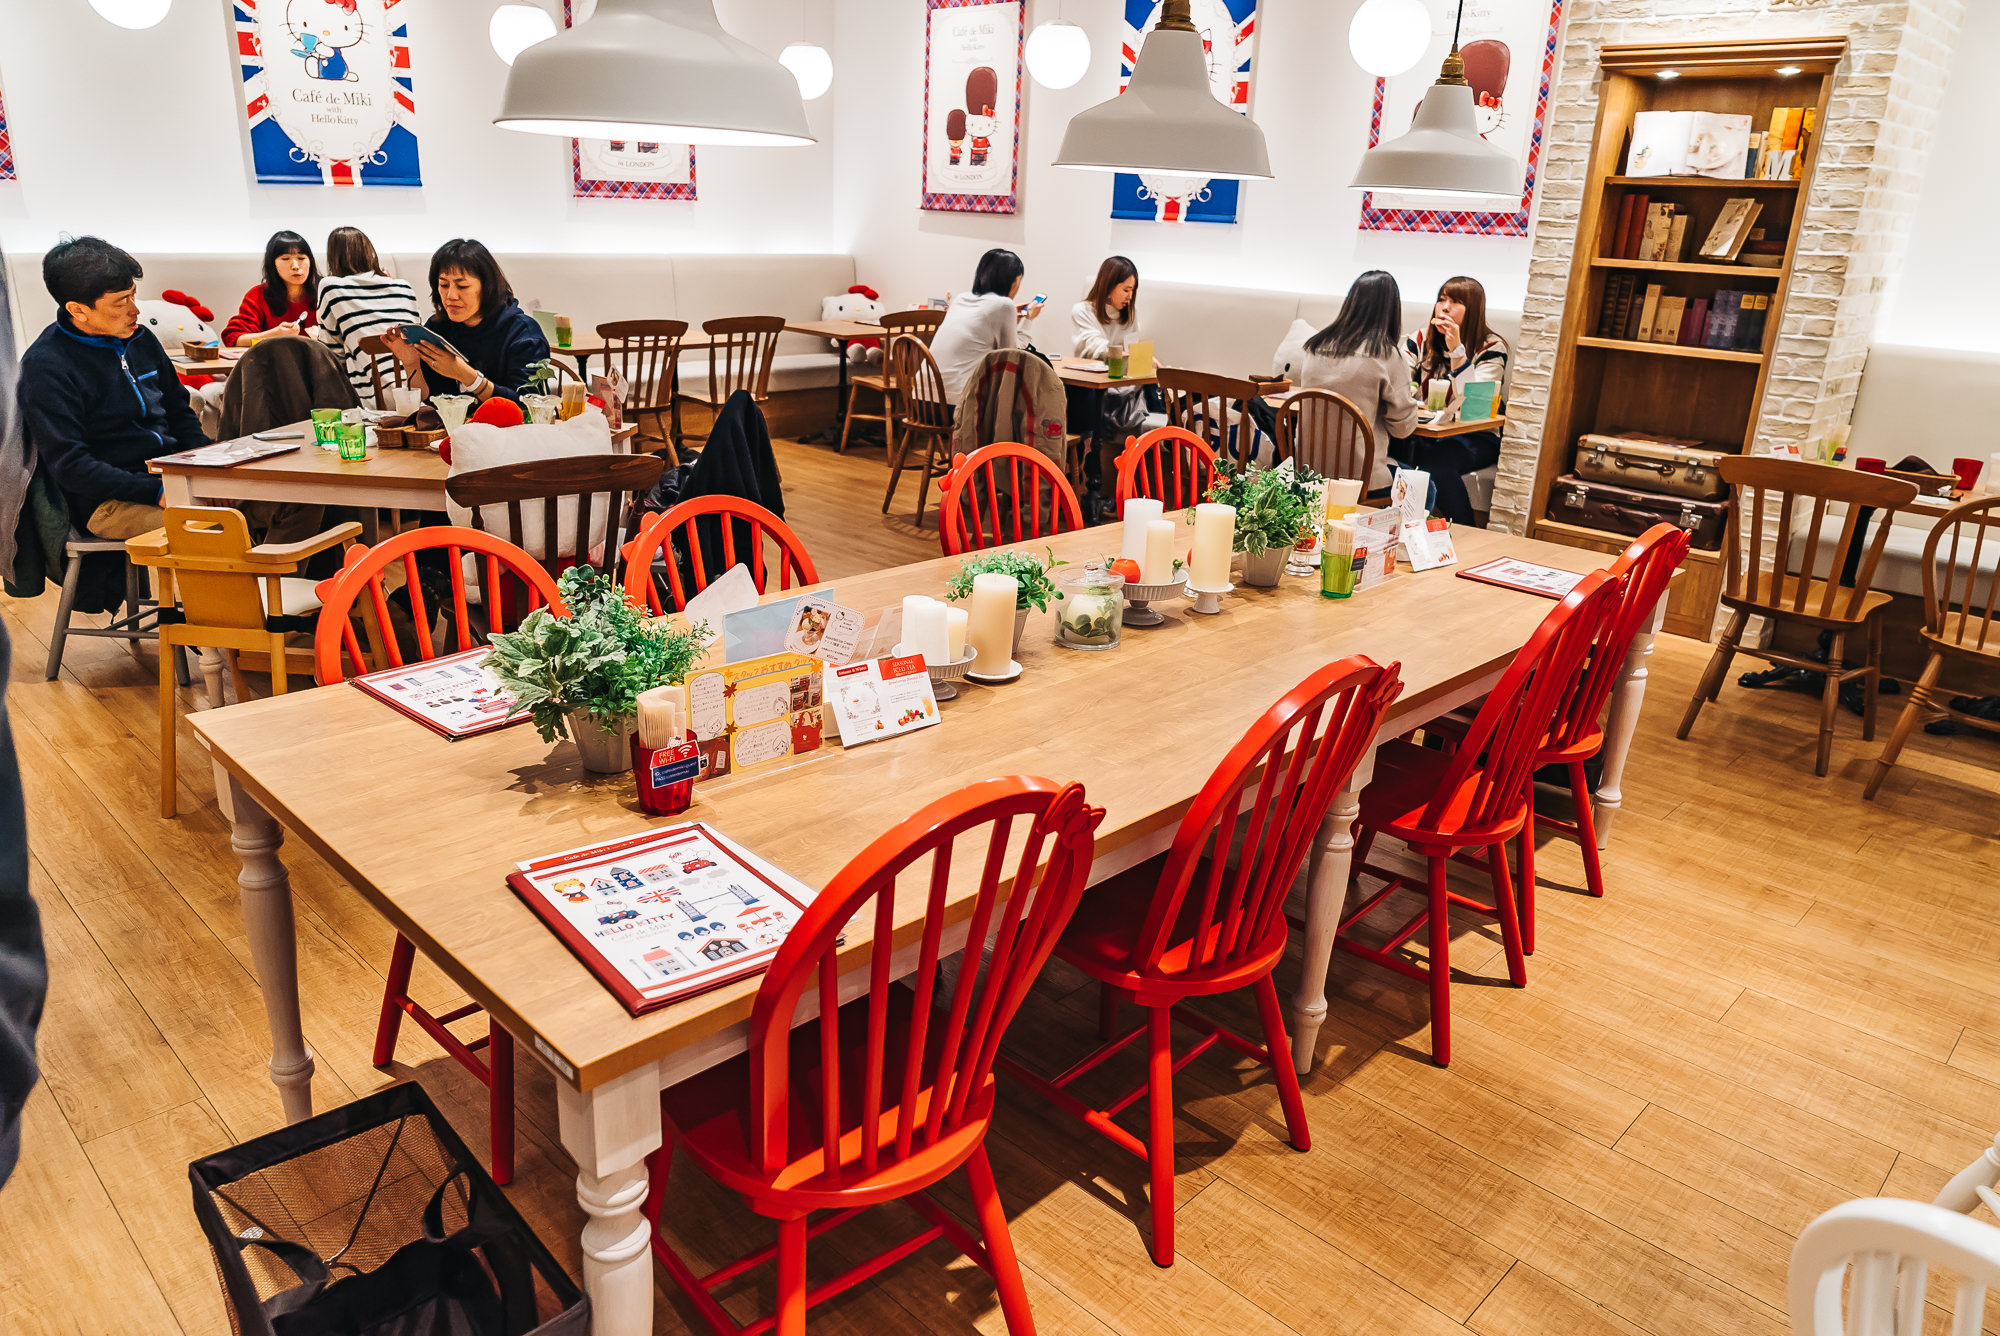 Do you see Hello Kitty's signature bow on the chairs?